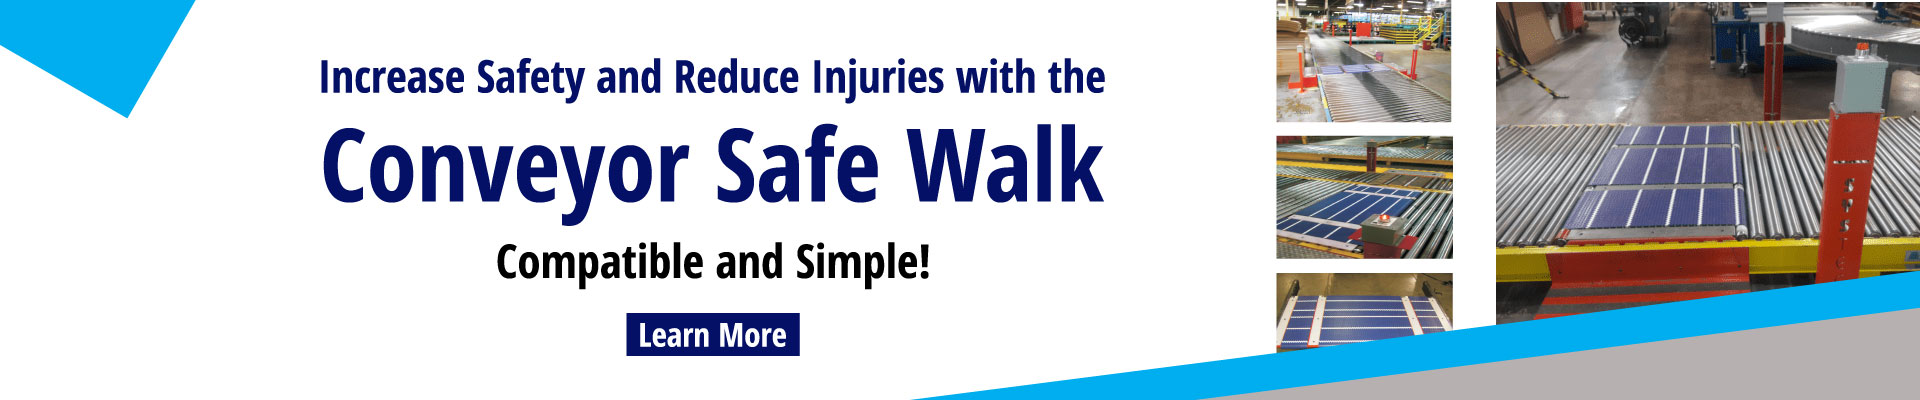 March Safewalk